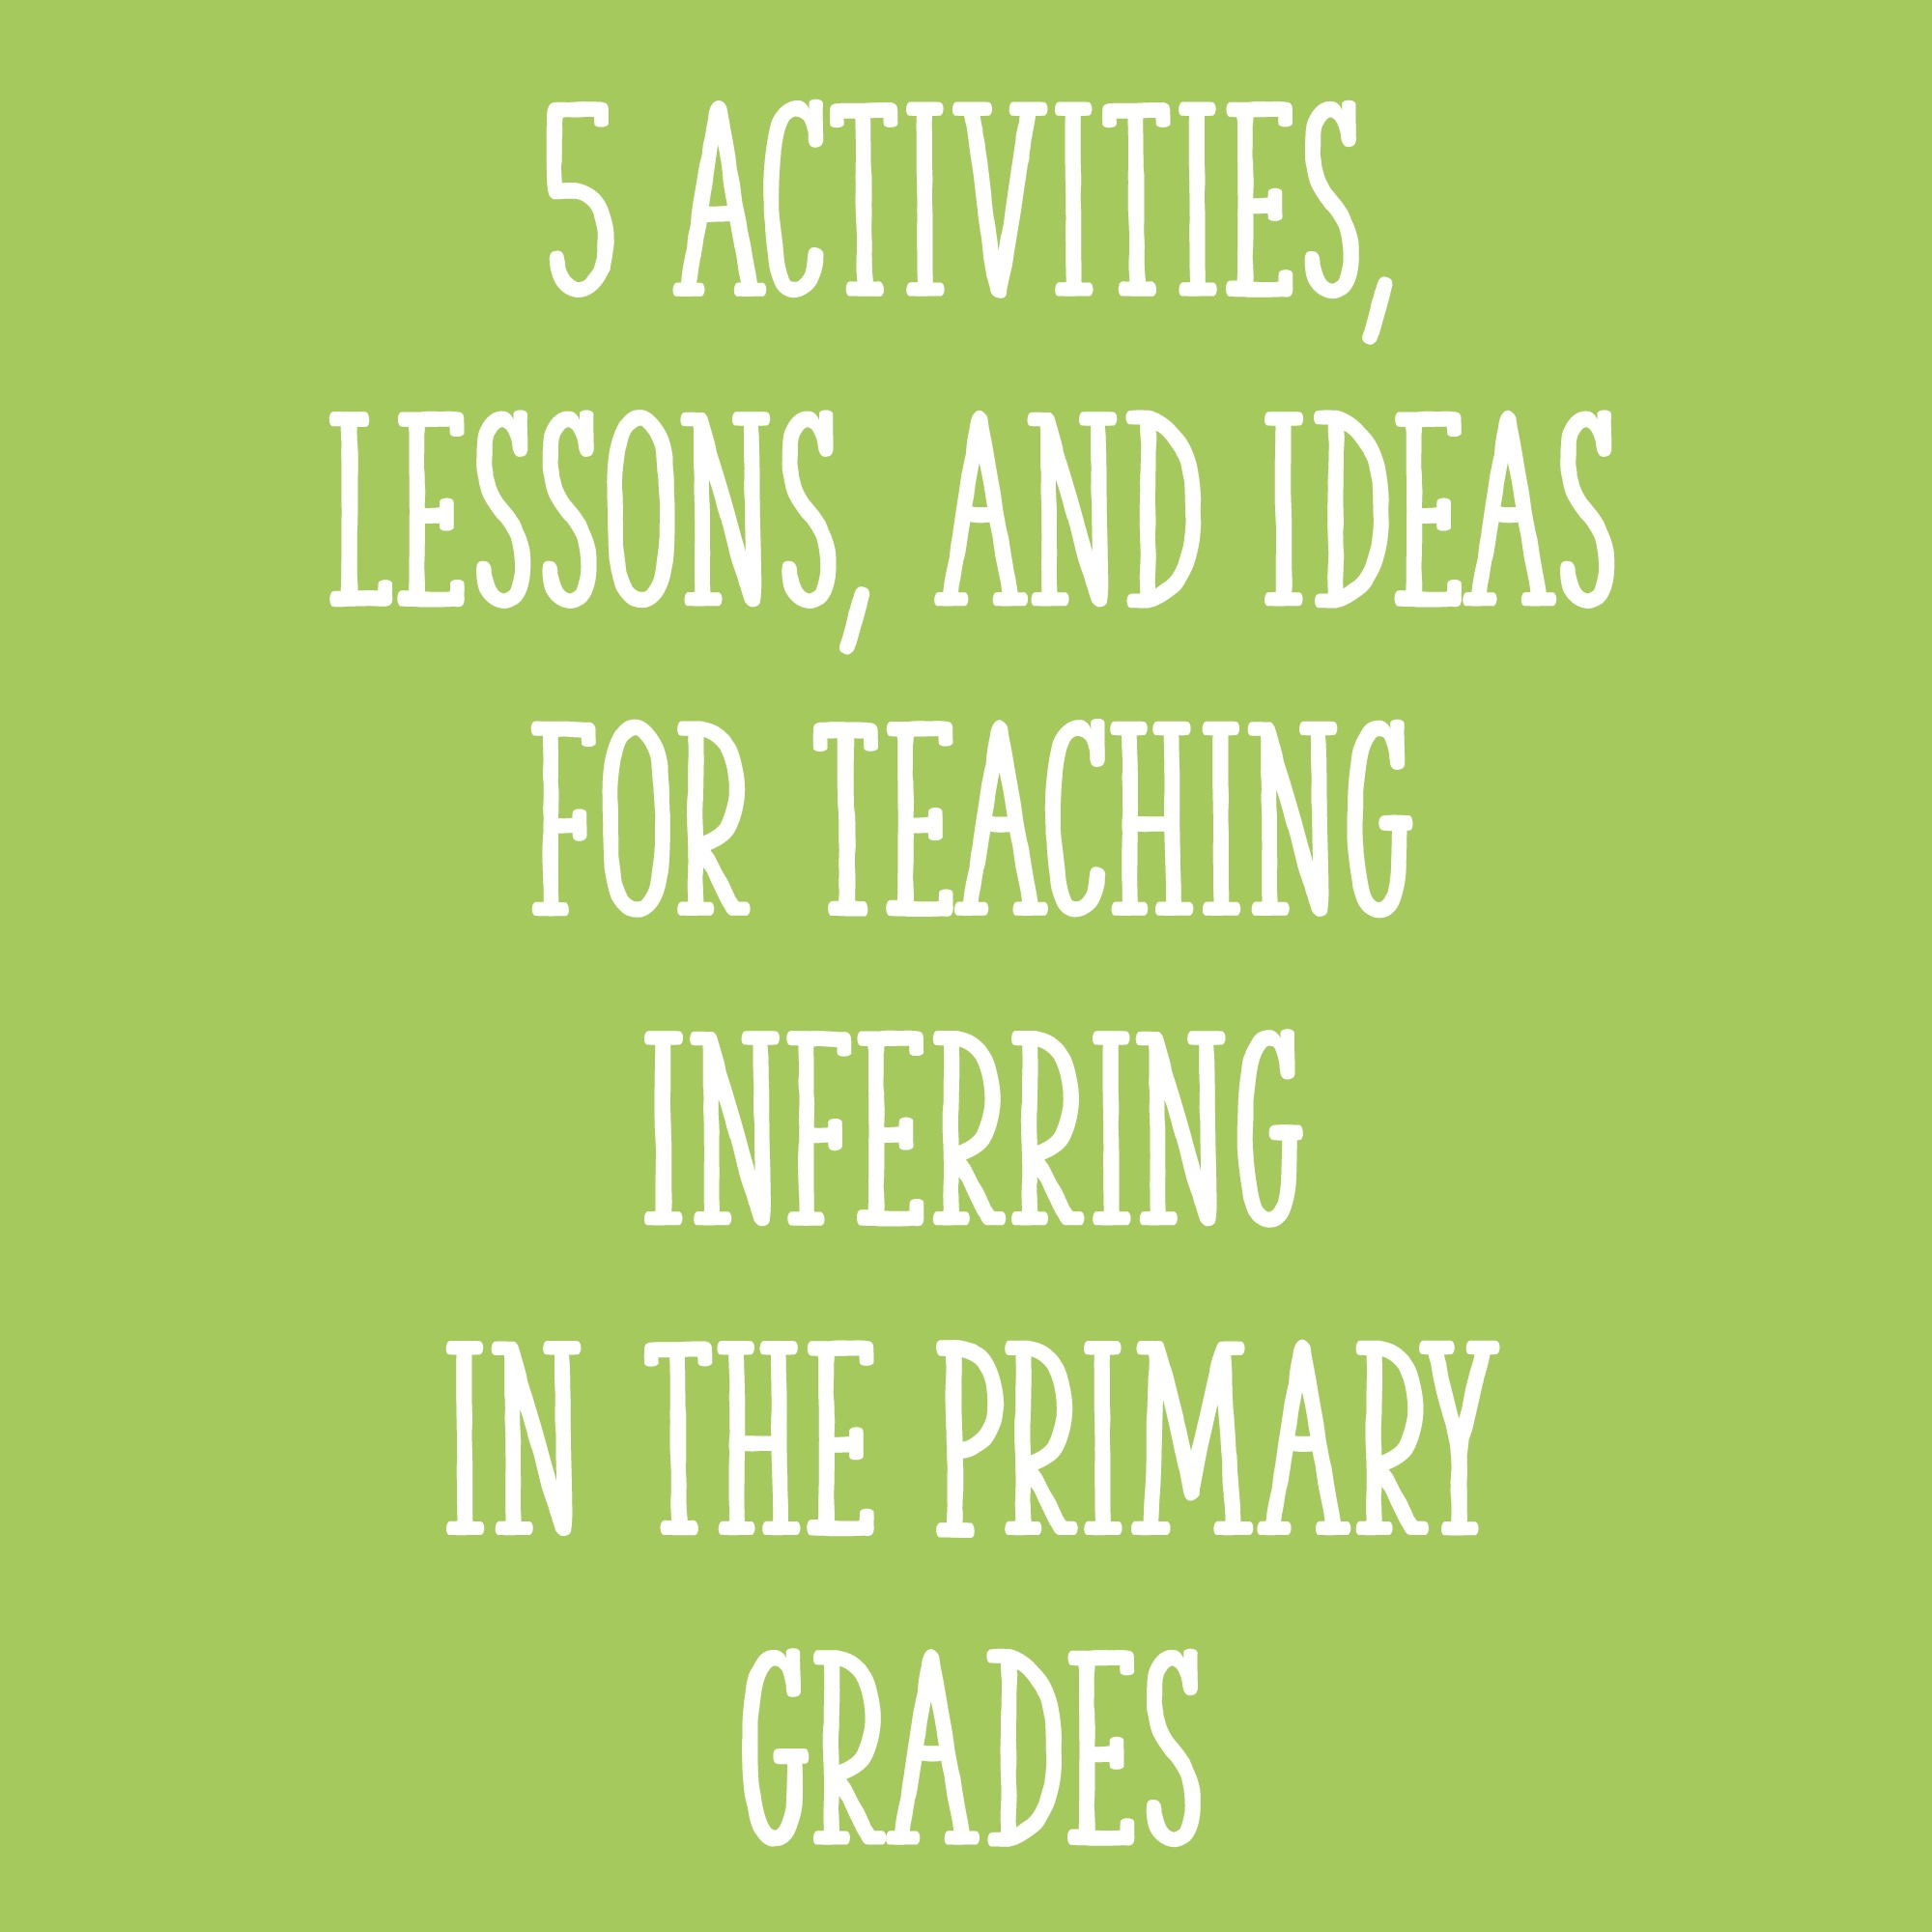 5 activities  lessons  and ideas for teaching inferring in